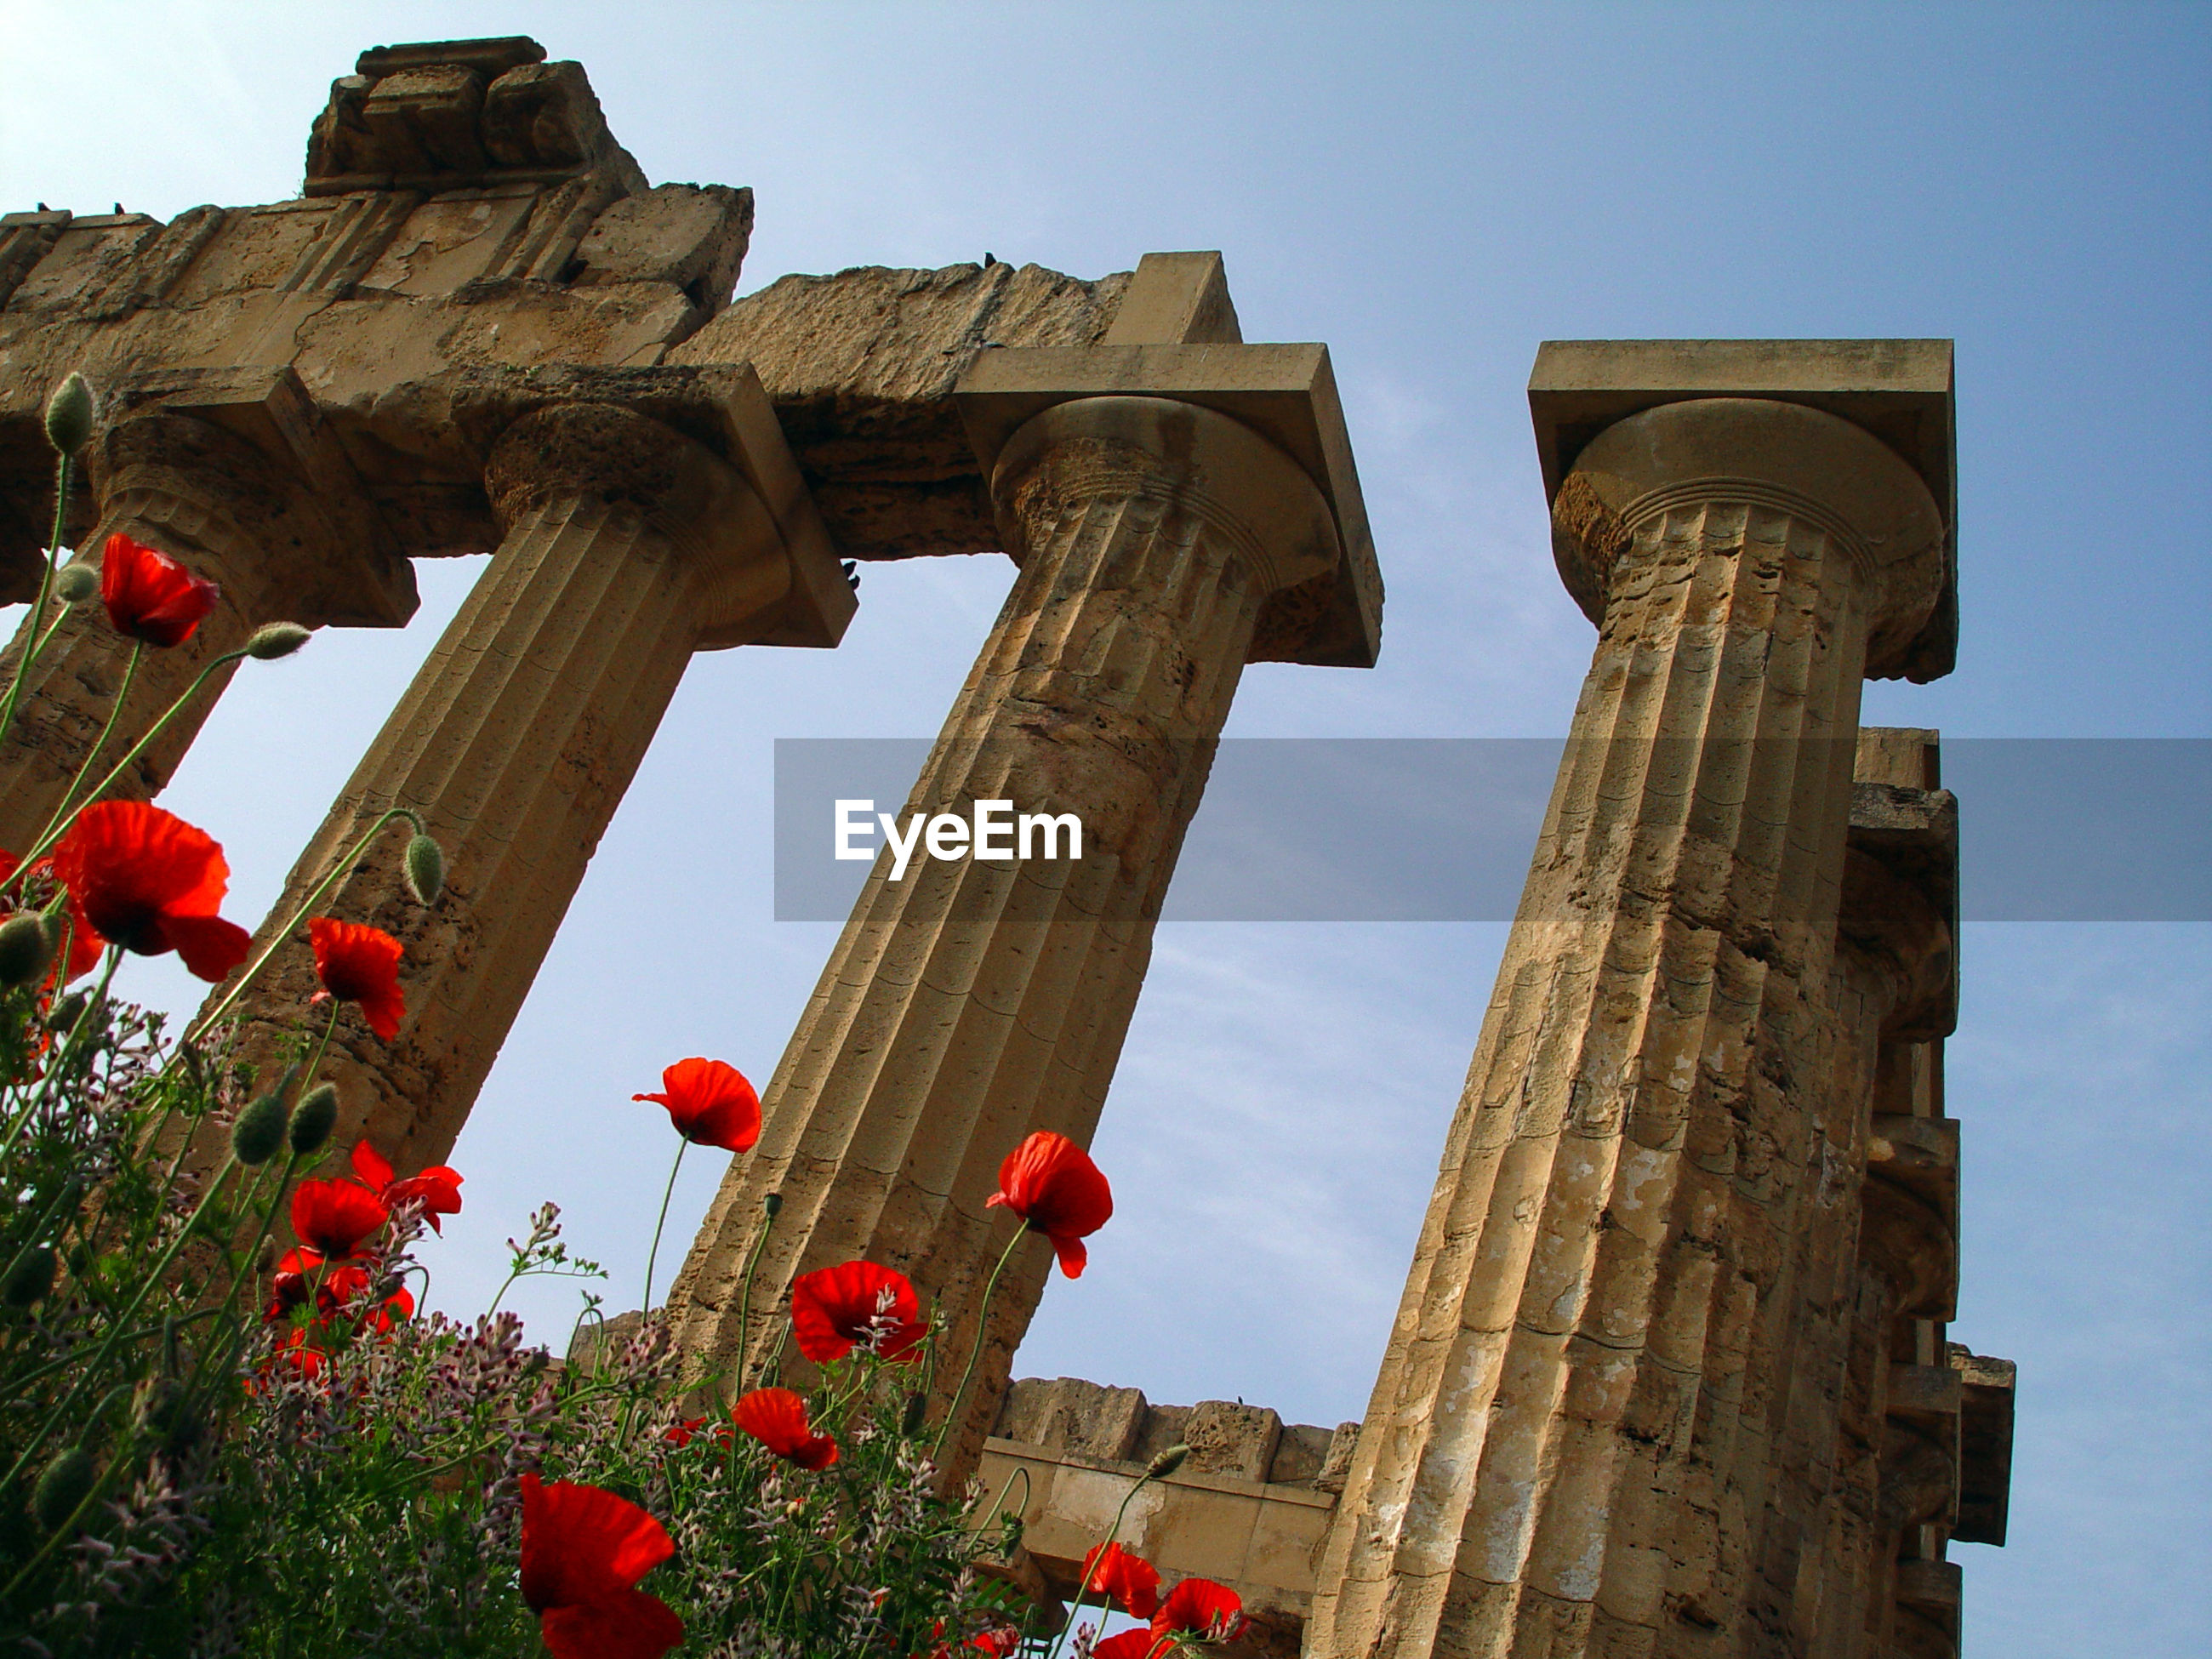 sky, architecture, flower, the past, built structure, flowering plant, history, nature, low angle view, day, no people, tourism, ancient, travel destinations, old ruin, plant, architectural column, travel, building exterior, ancient civilization, outdoors, archaeology, ruined